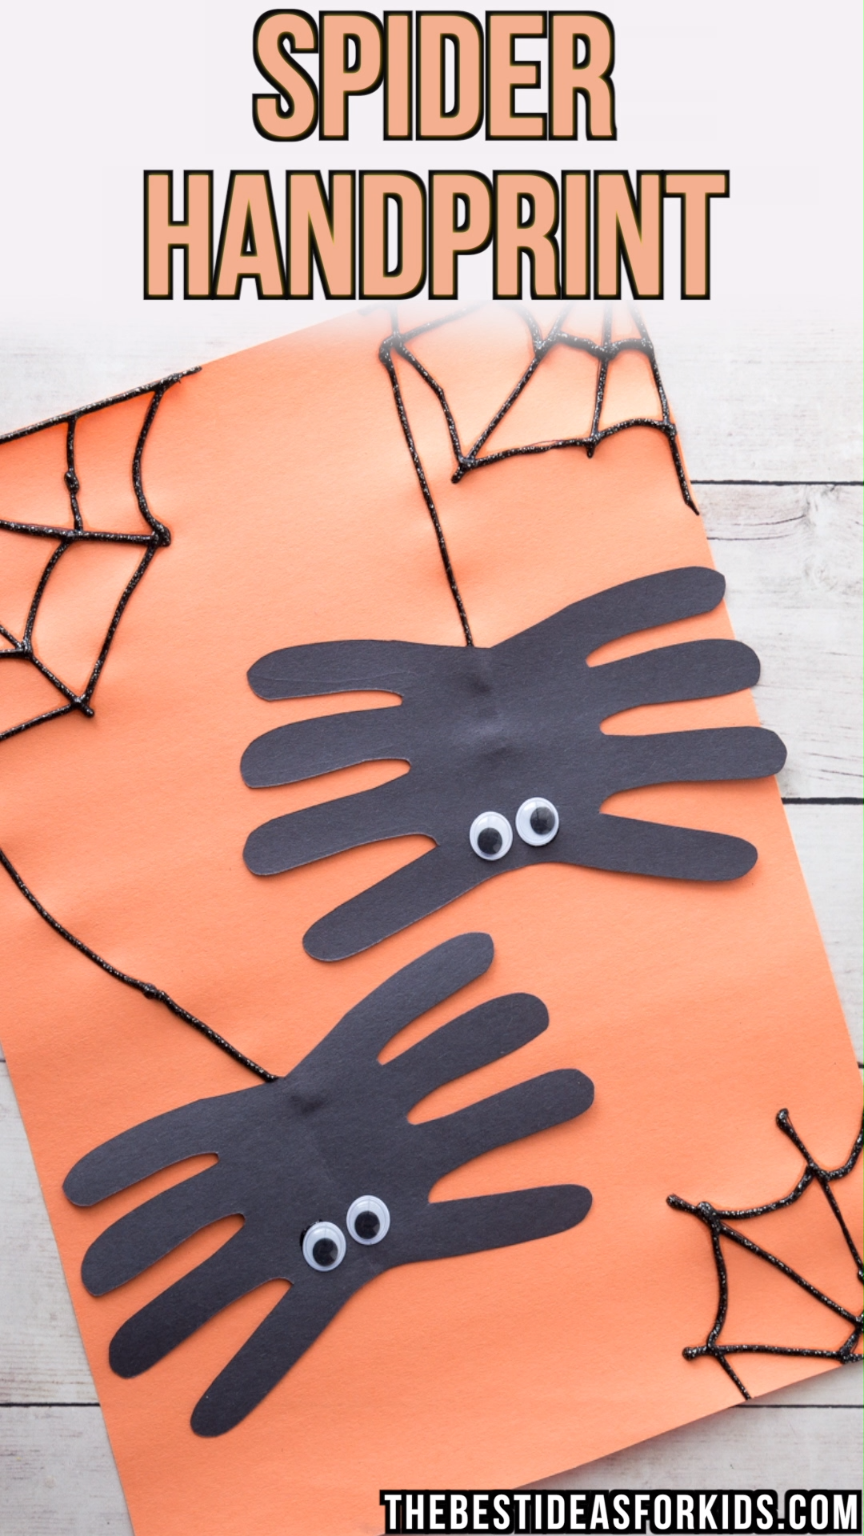 Spider Handprint Craft - The Best Ideas for Kids